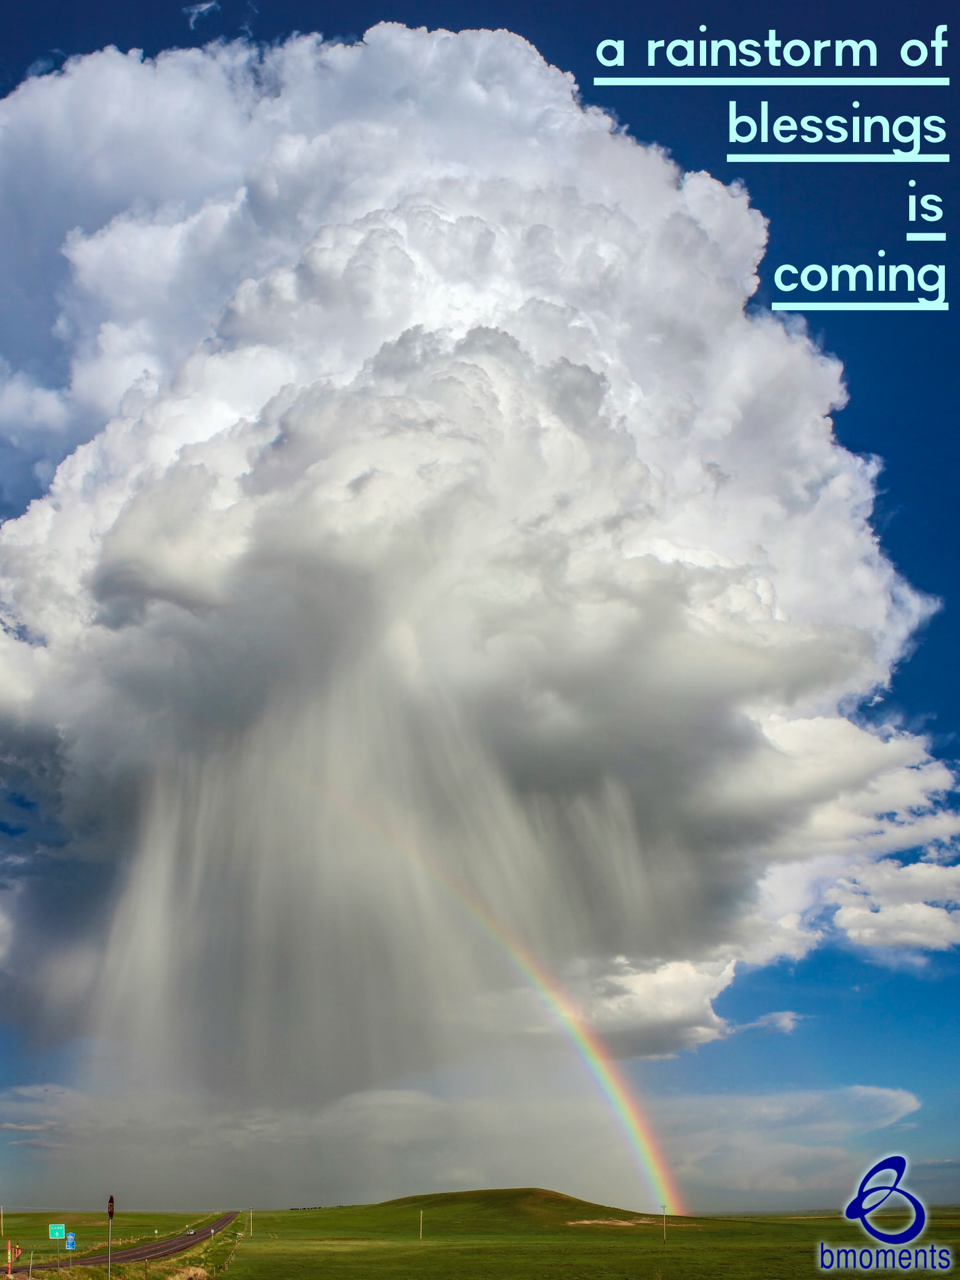 A Rainstorm of Blessings Awaits You